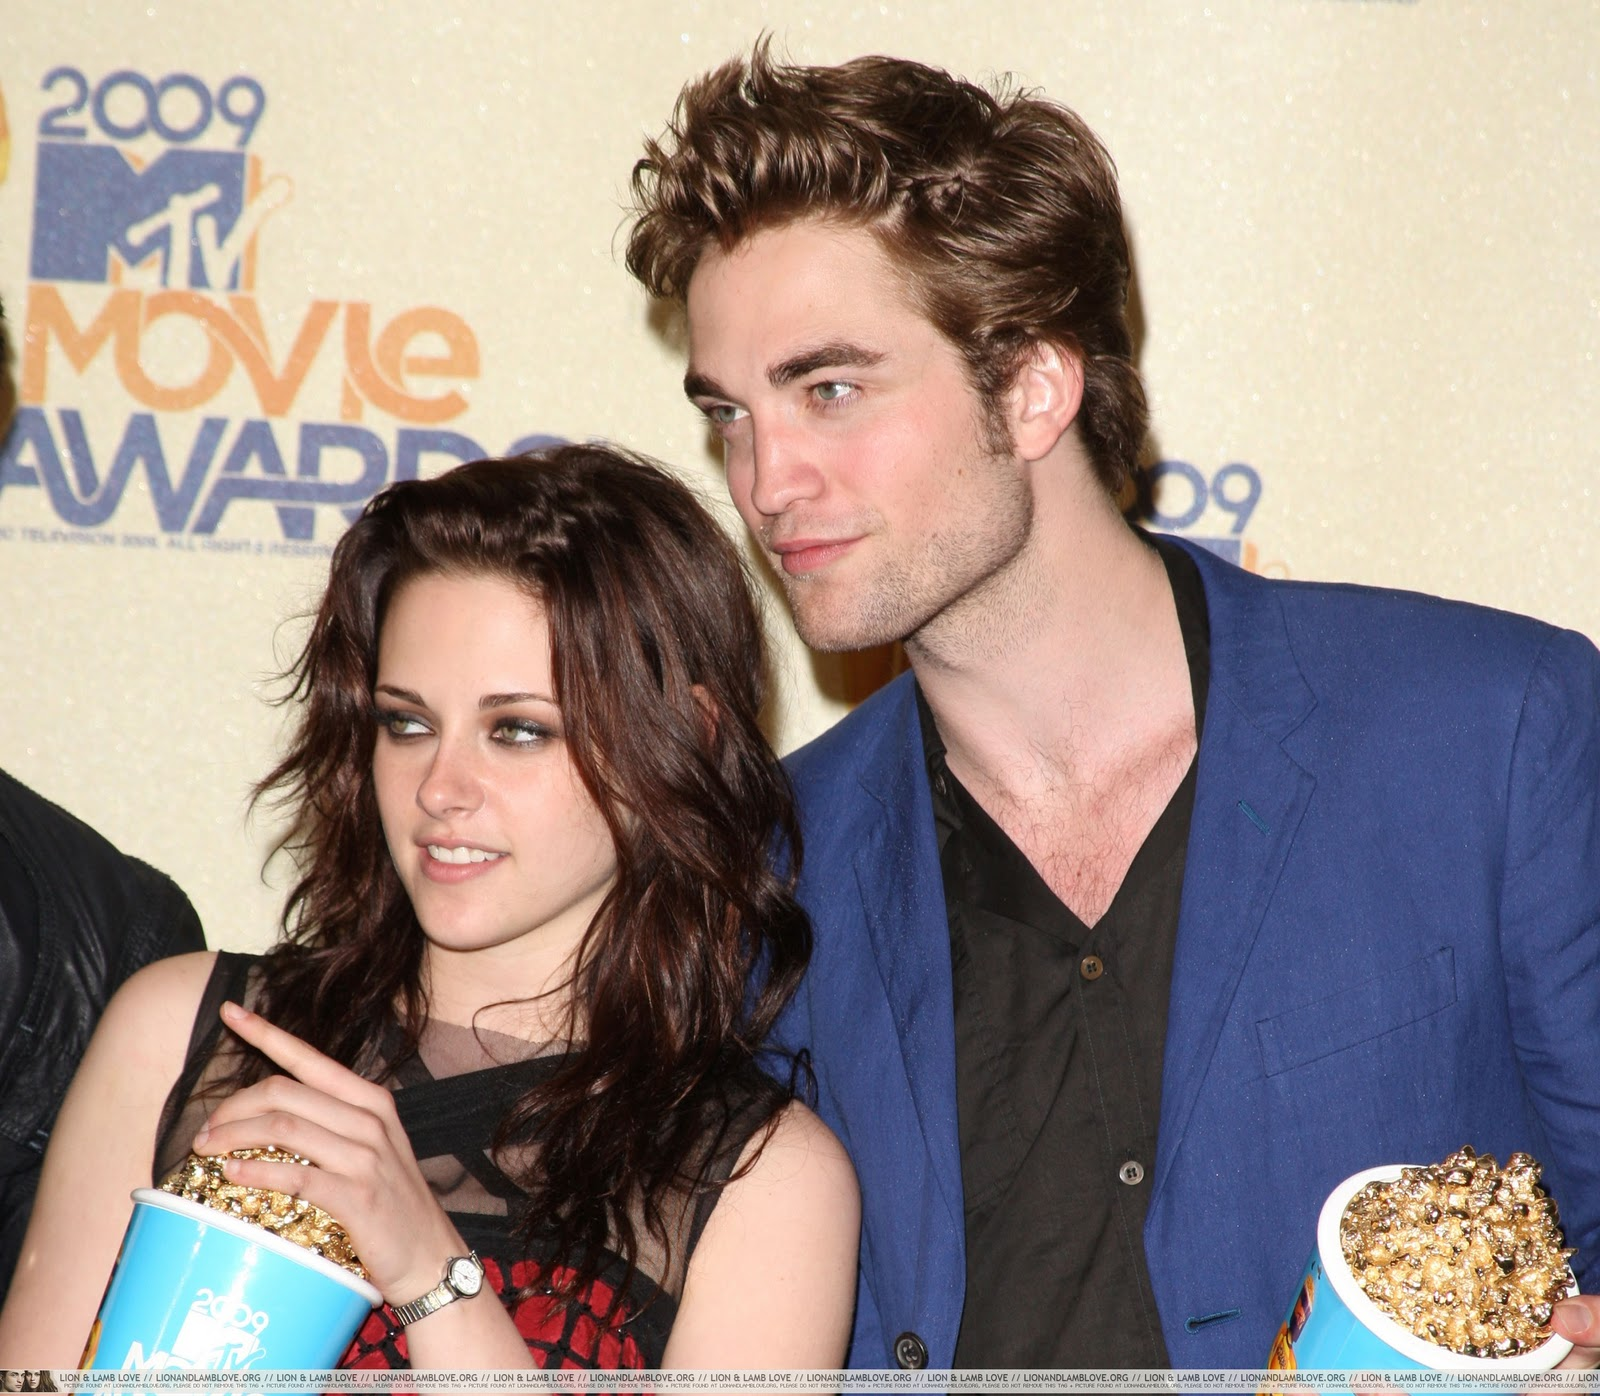 http://3.bp.blogspot.com/_5zgxaFyS-pk/TN_c_-EcIYI/AAAAAAAAAGs/f3bvw2tOa-g/s1600/3-robert-pattinson-kristen-stewart-mtv-movie-awards-5.jpg